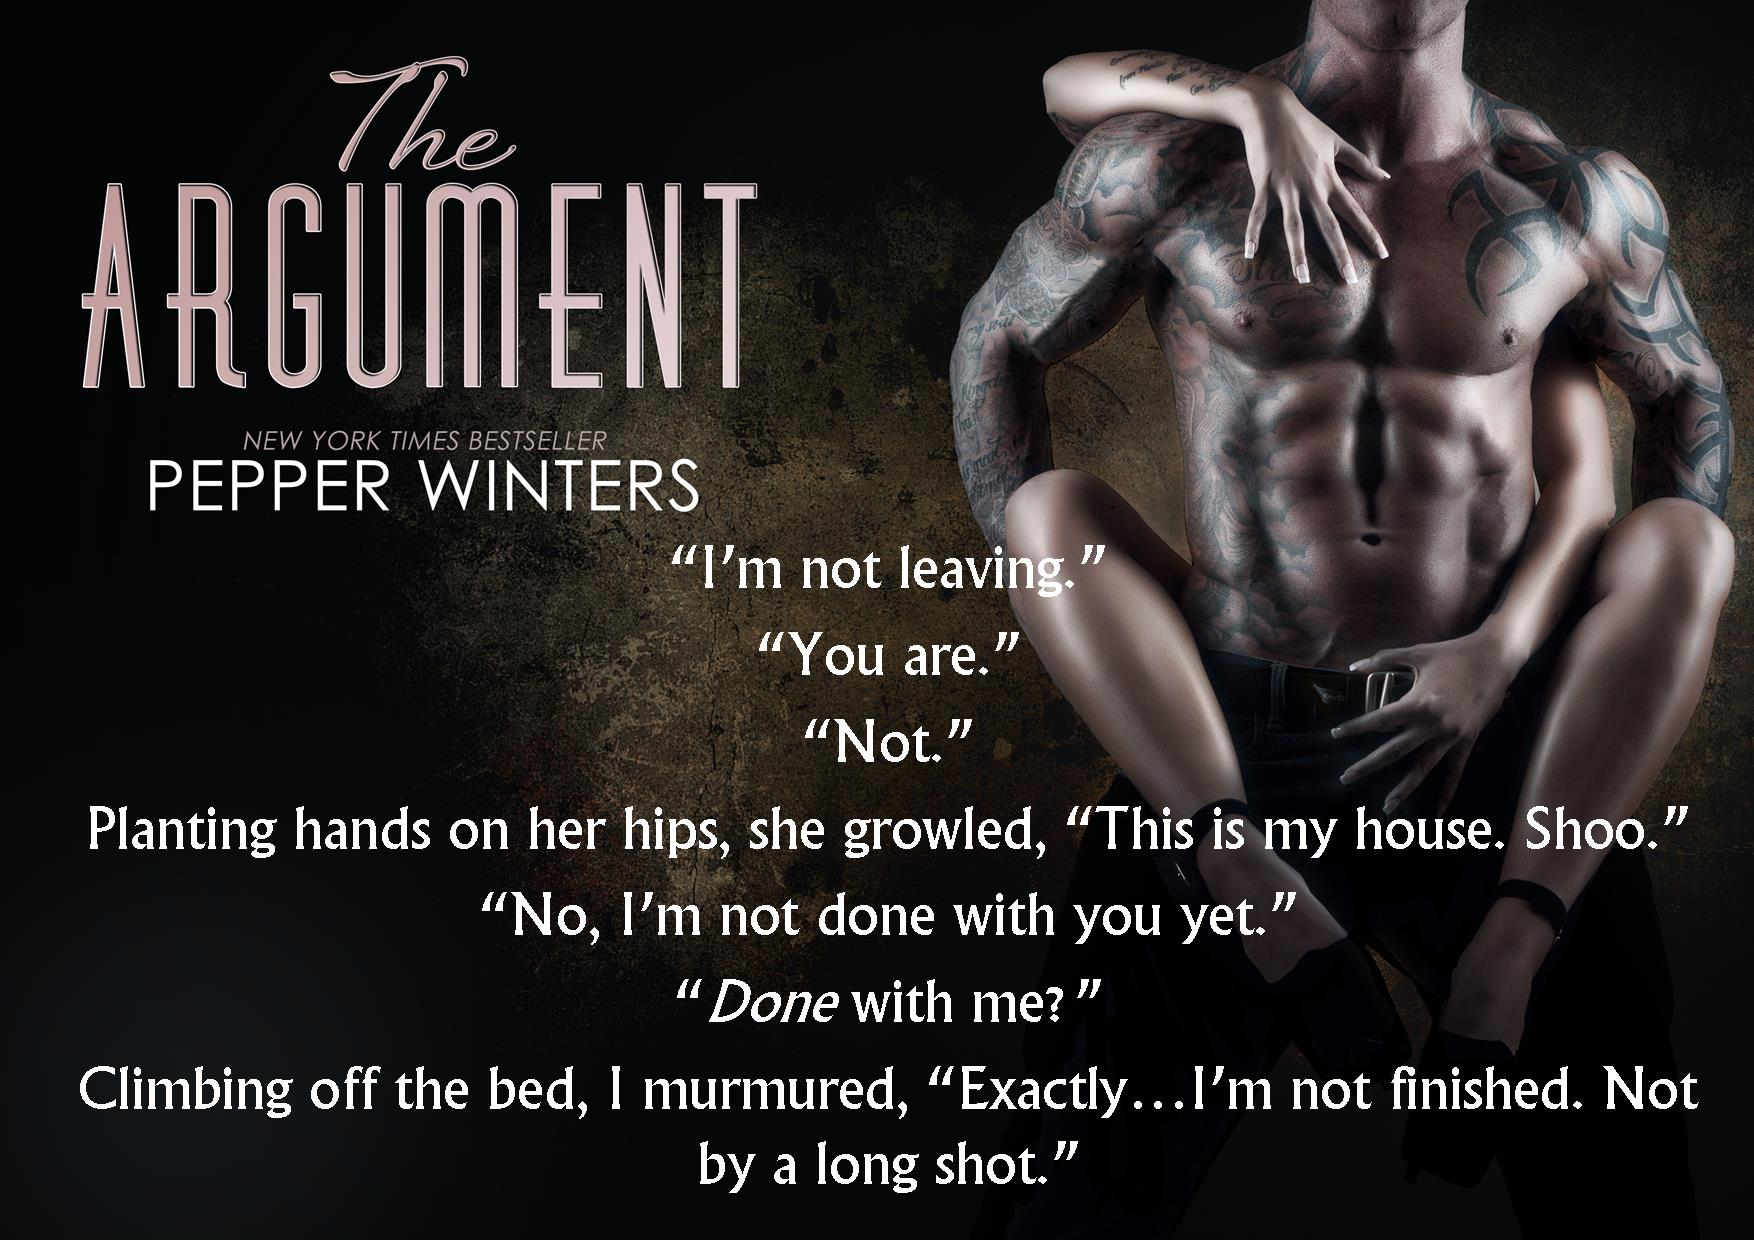 The Argument by Pepper Winters